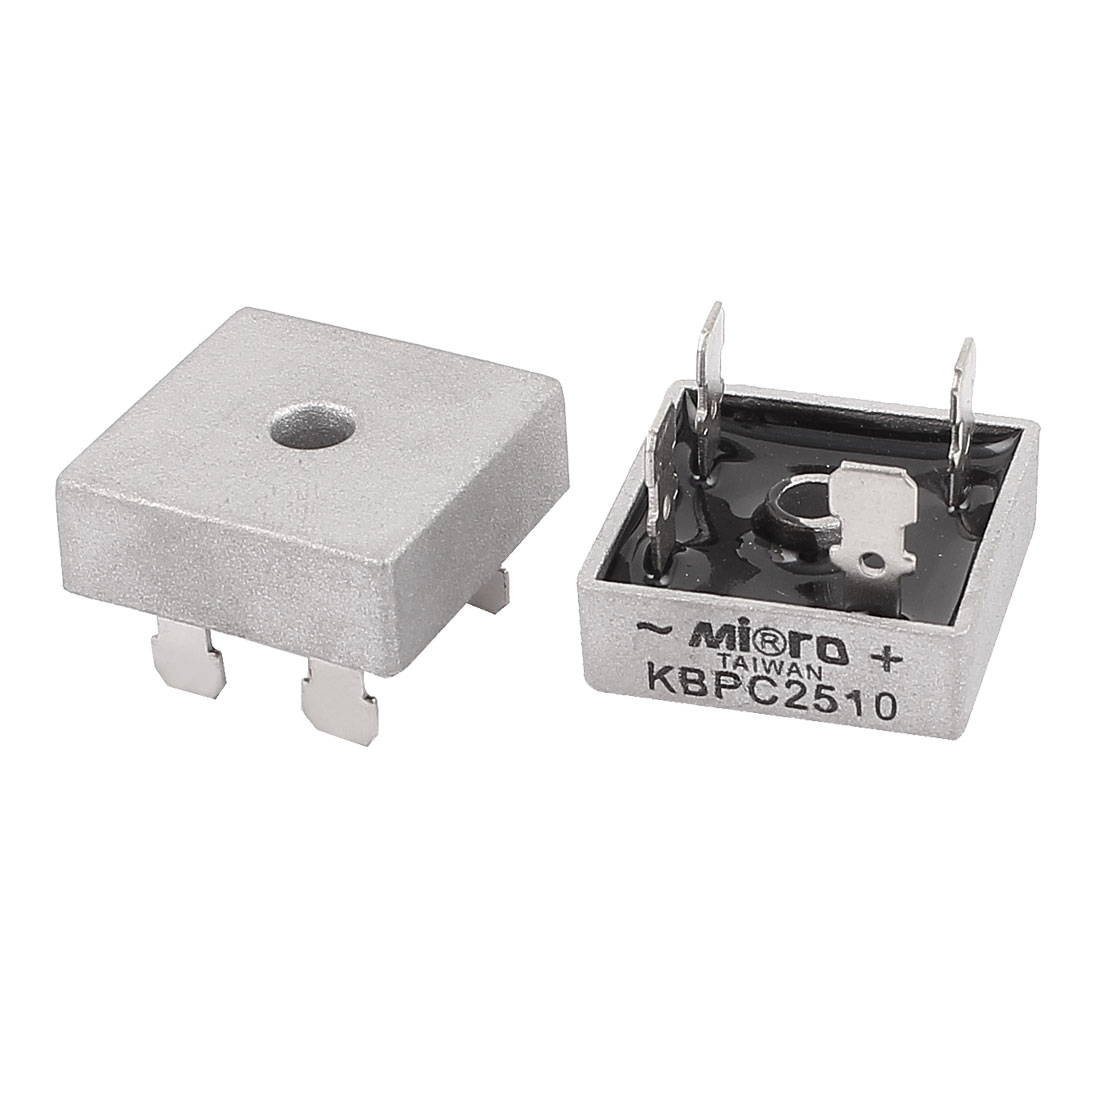 KBPC2510 25A 1000V 4Pin One Phase Semi-Conductor Bridge Rectifier 2PCS